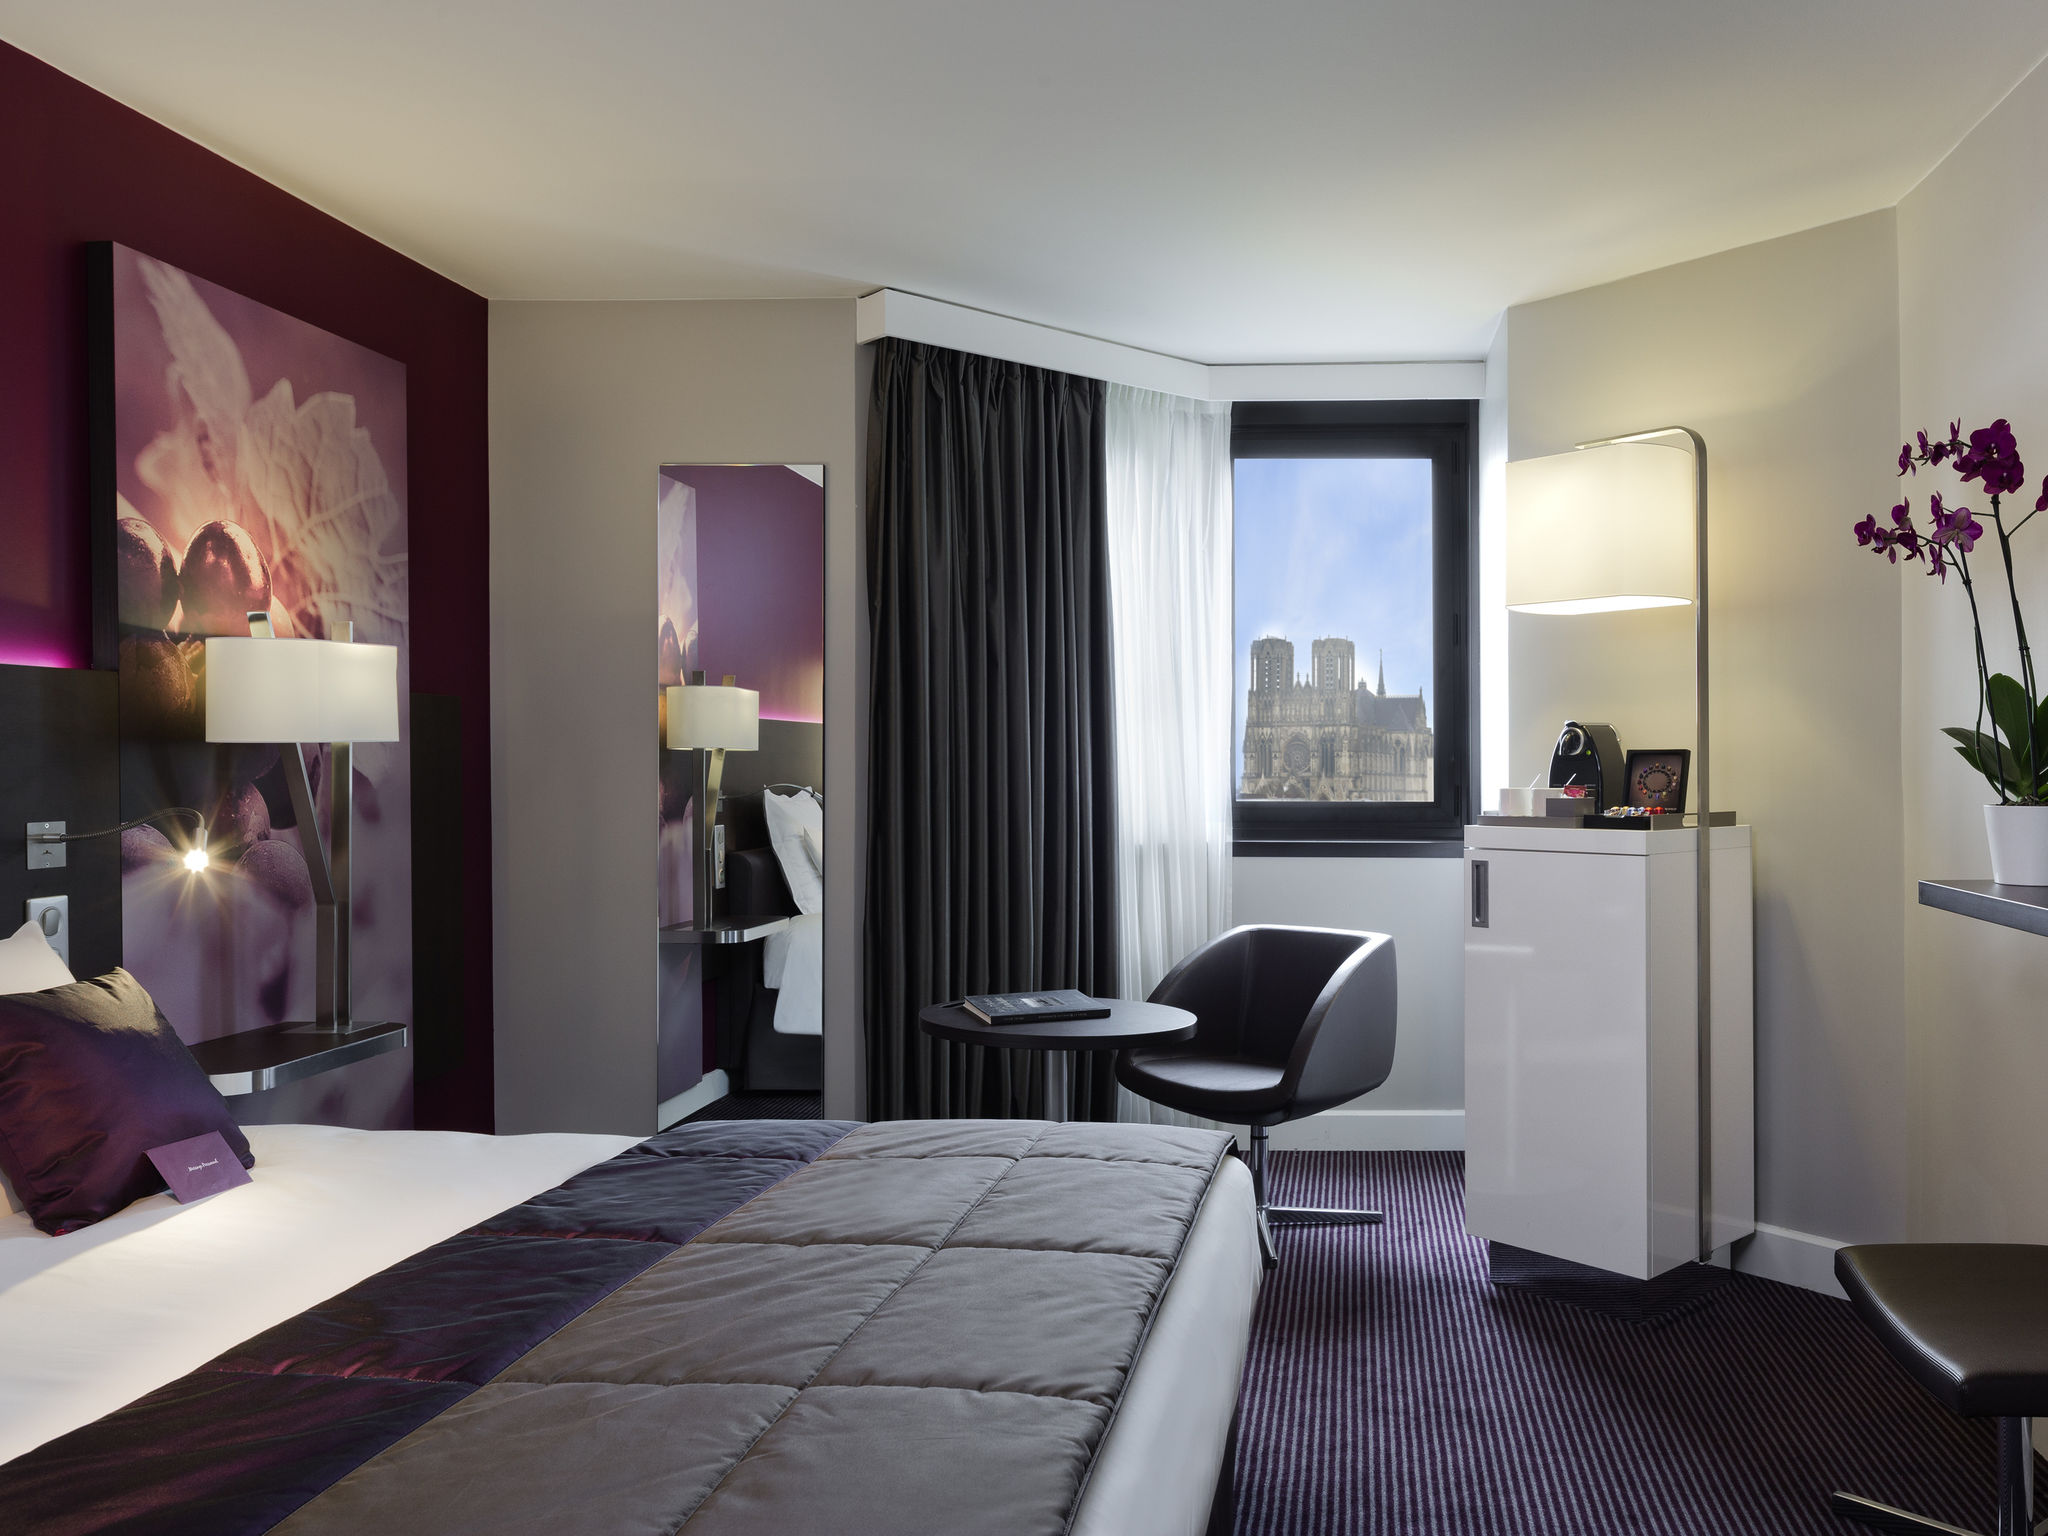 Hotel in REIMS - Mercure Reims Centre Cathedrale Hotel on